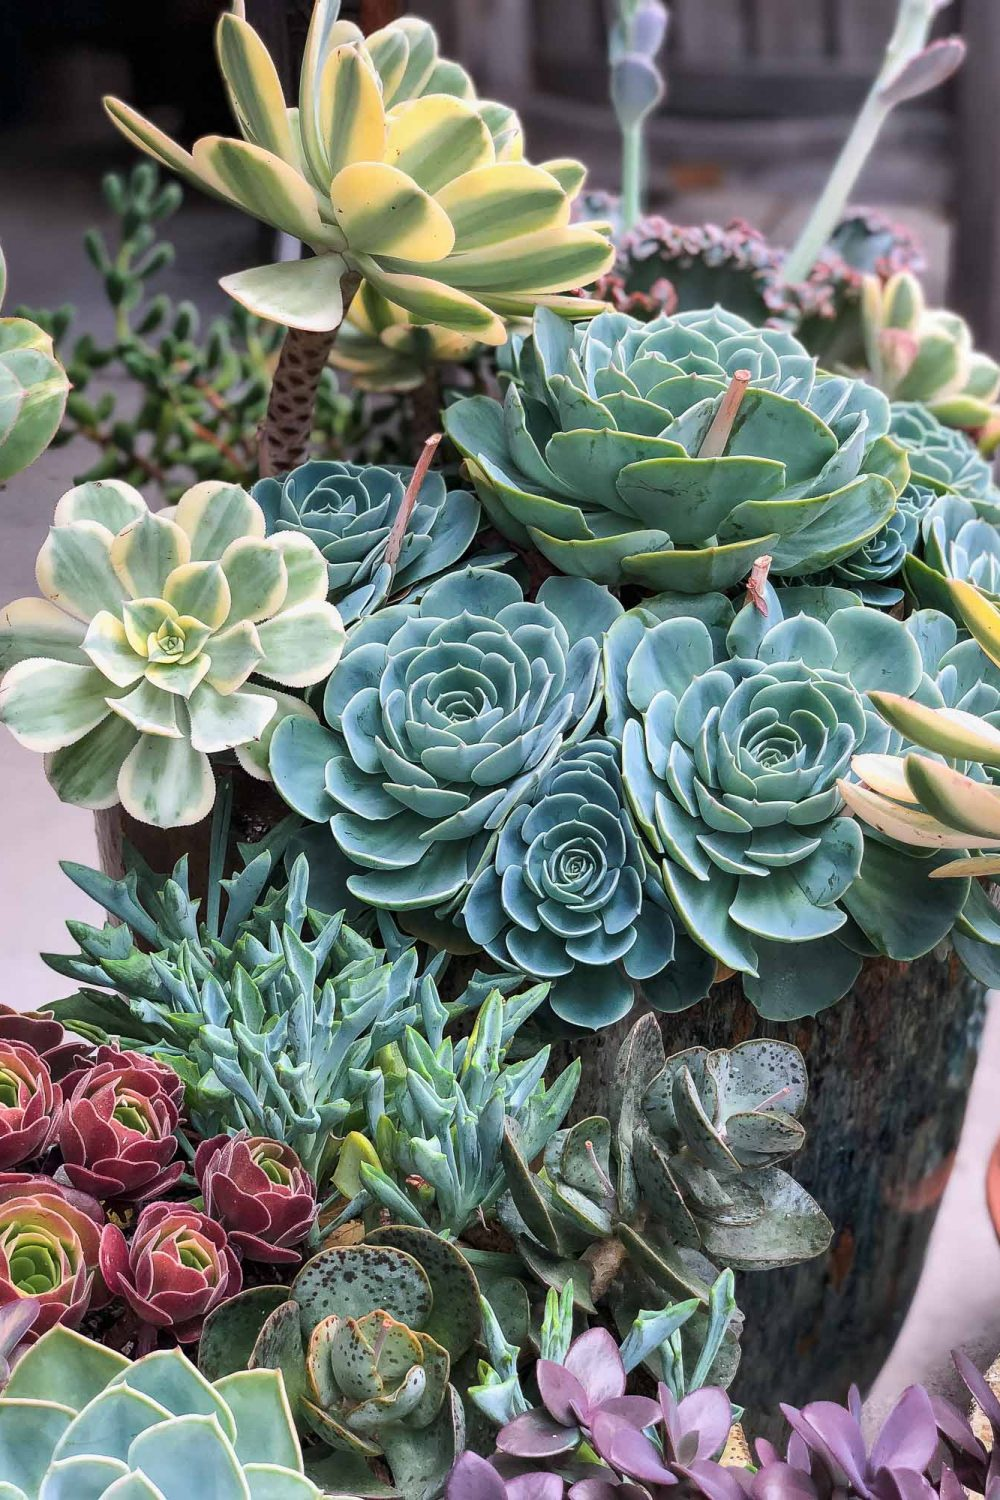 How to Care for Echeveria Imbricata (and other Succulents)